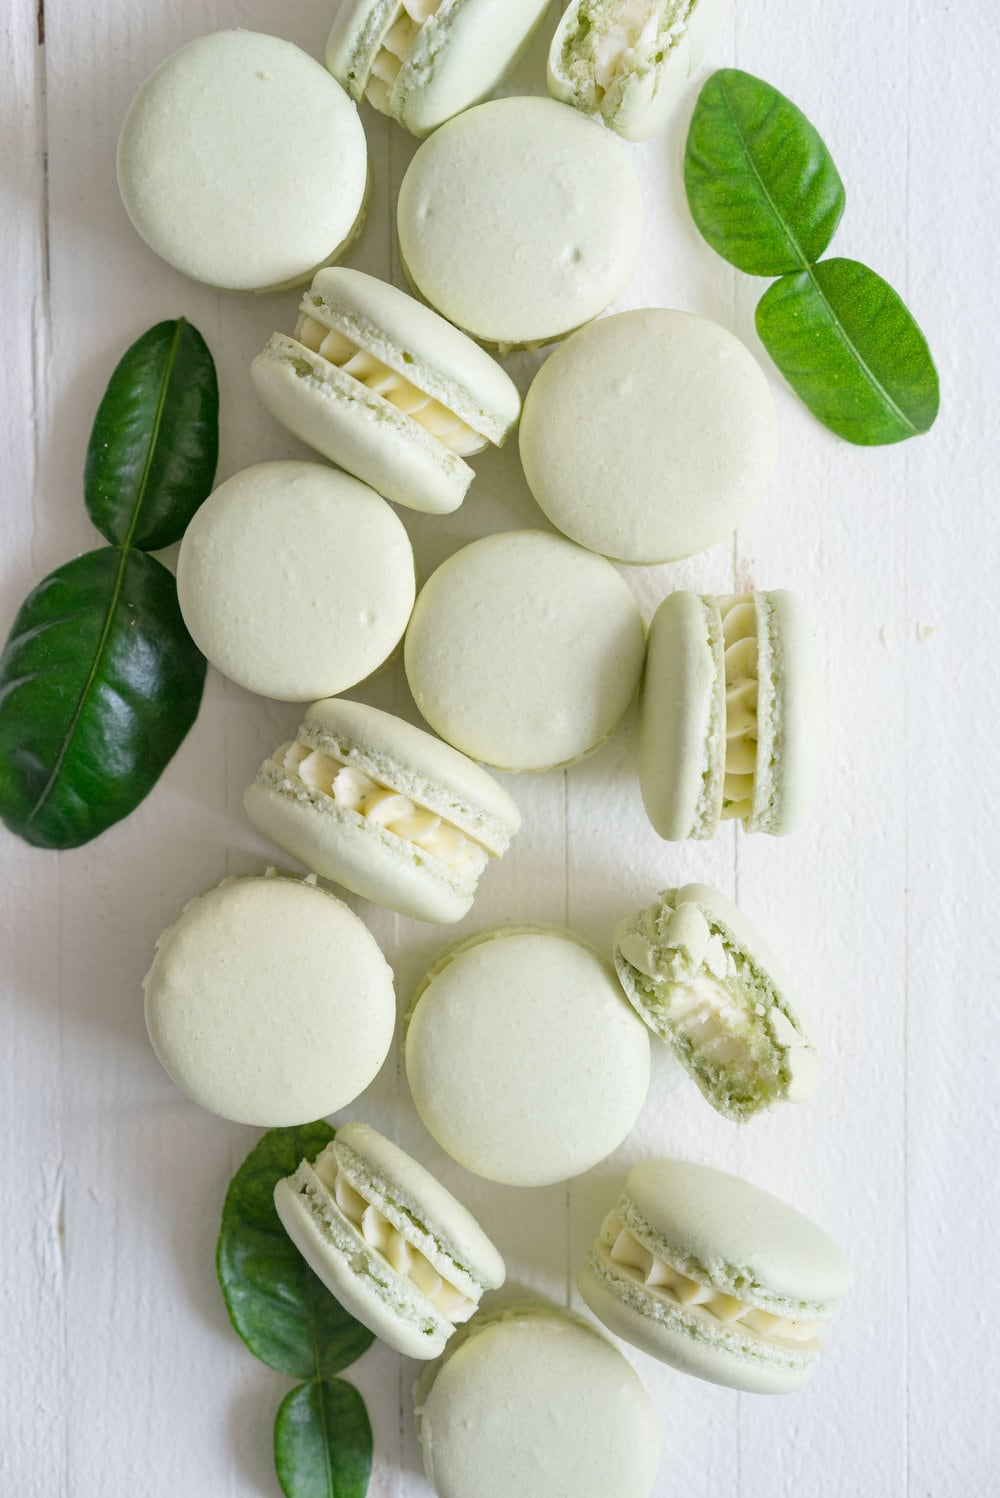 Kaffir Lime Macaron - a shell filled with a delicately infused kaffir lime german buttercream #kaffirlime #macarons #germanbuttercream